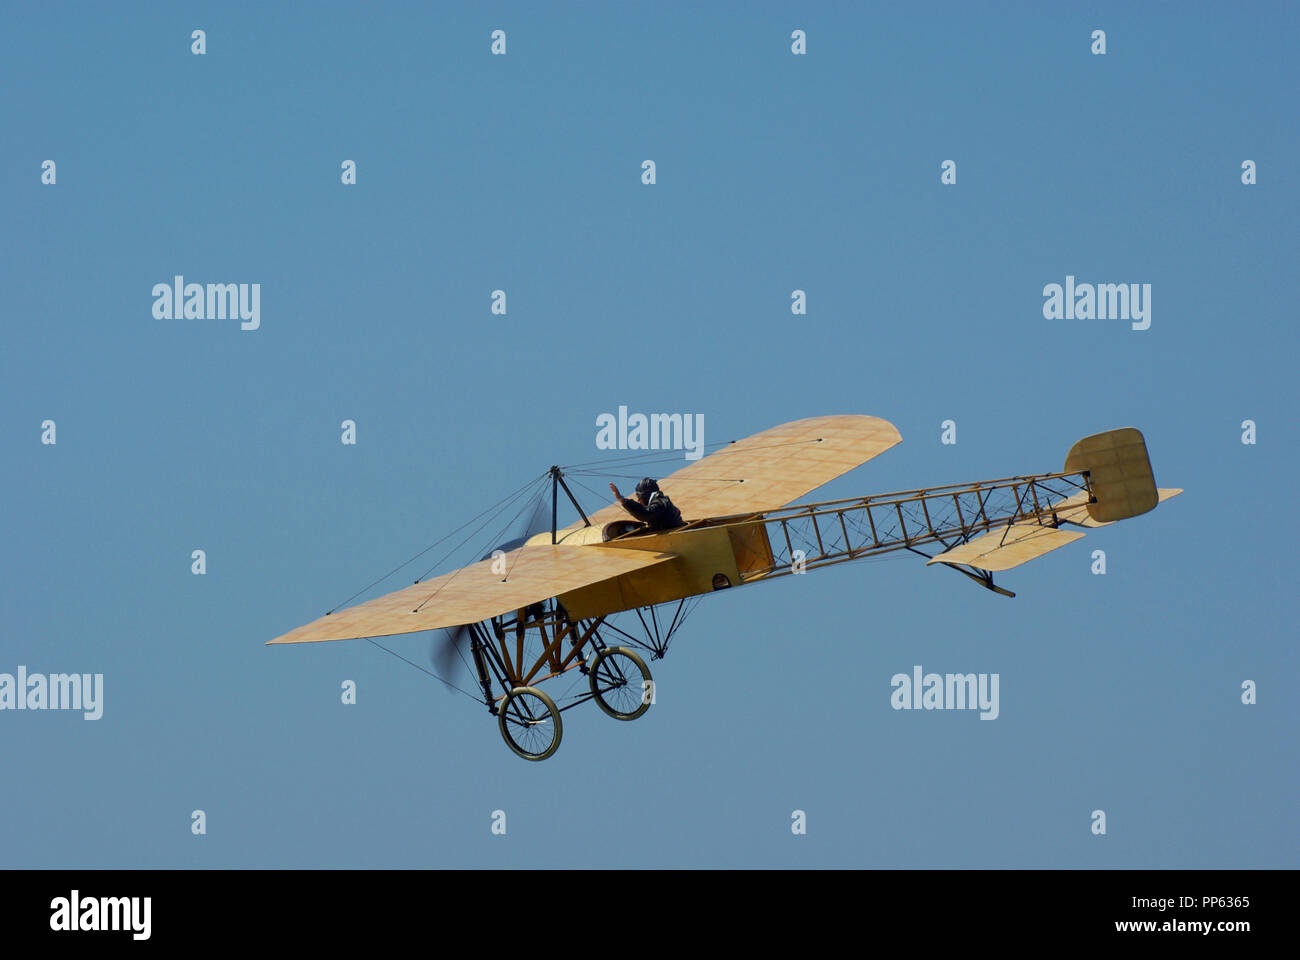 flying-bleriot-xi-replica-built-in-sweden-by-mikael-carlsson-pioneer-flying-machine-by-louis-bleriot-from-the-early-days-of-flight-blue-sky-PP6365.jpg